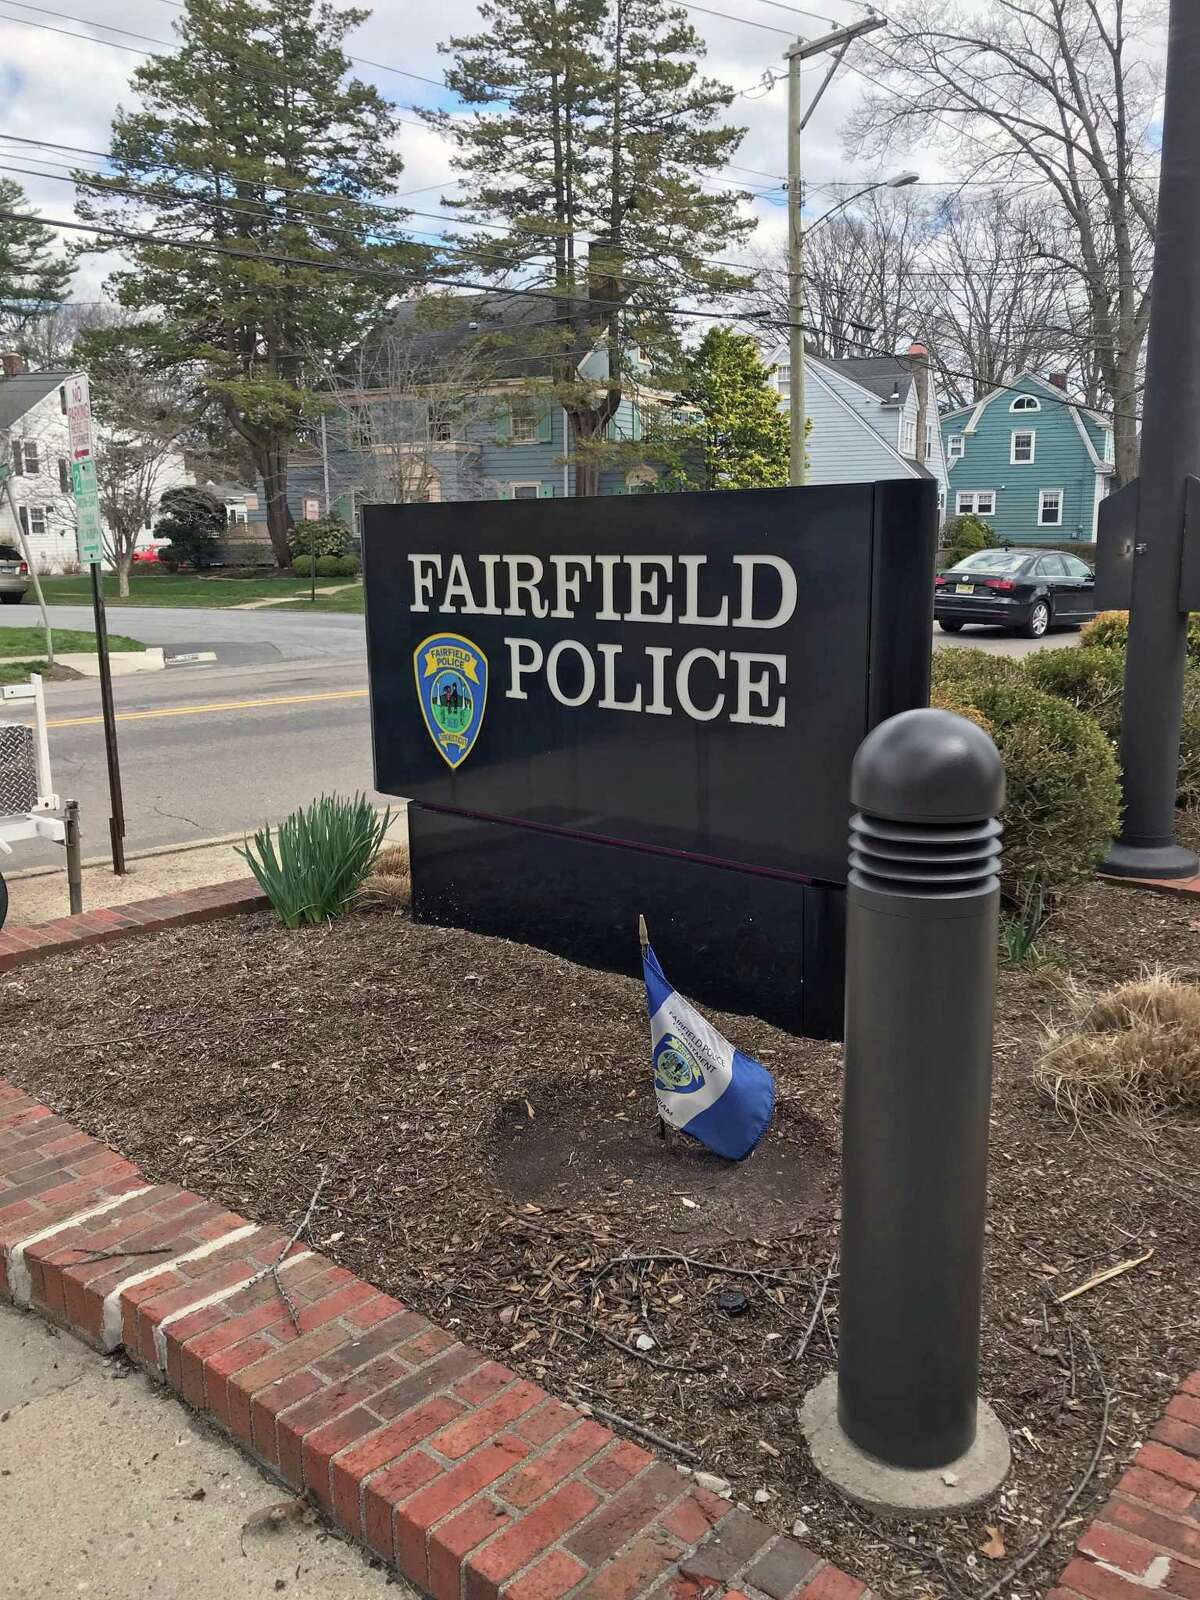 Police in Fairfield, Conn., are clarifying what they call misinformation about some recent incidents in town.